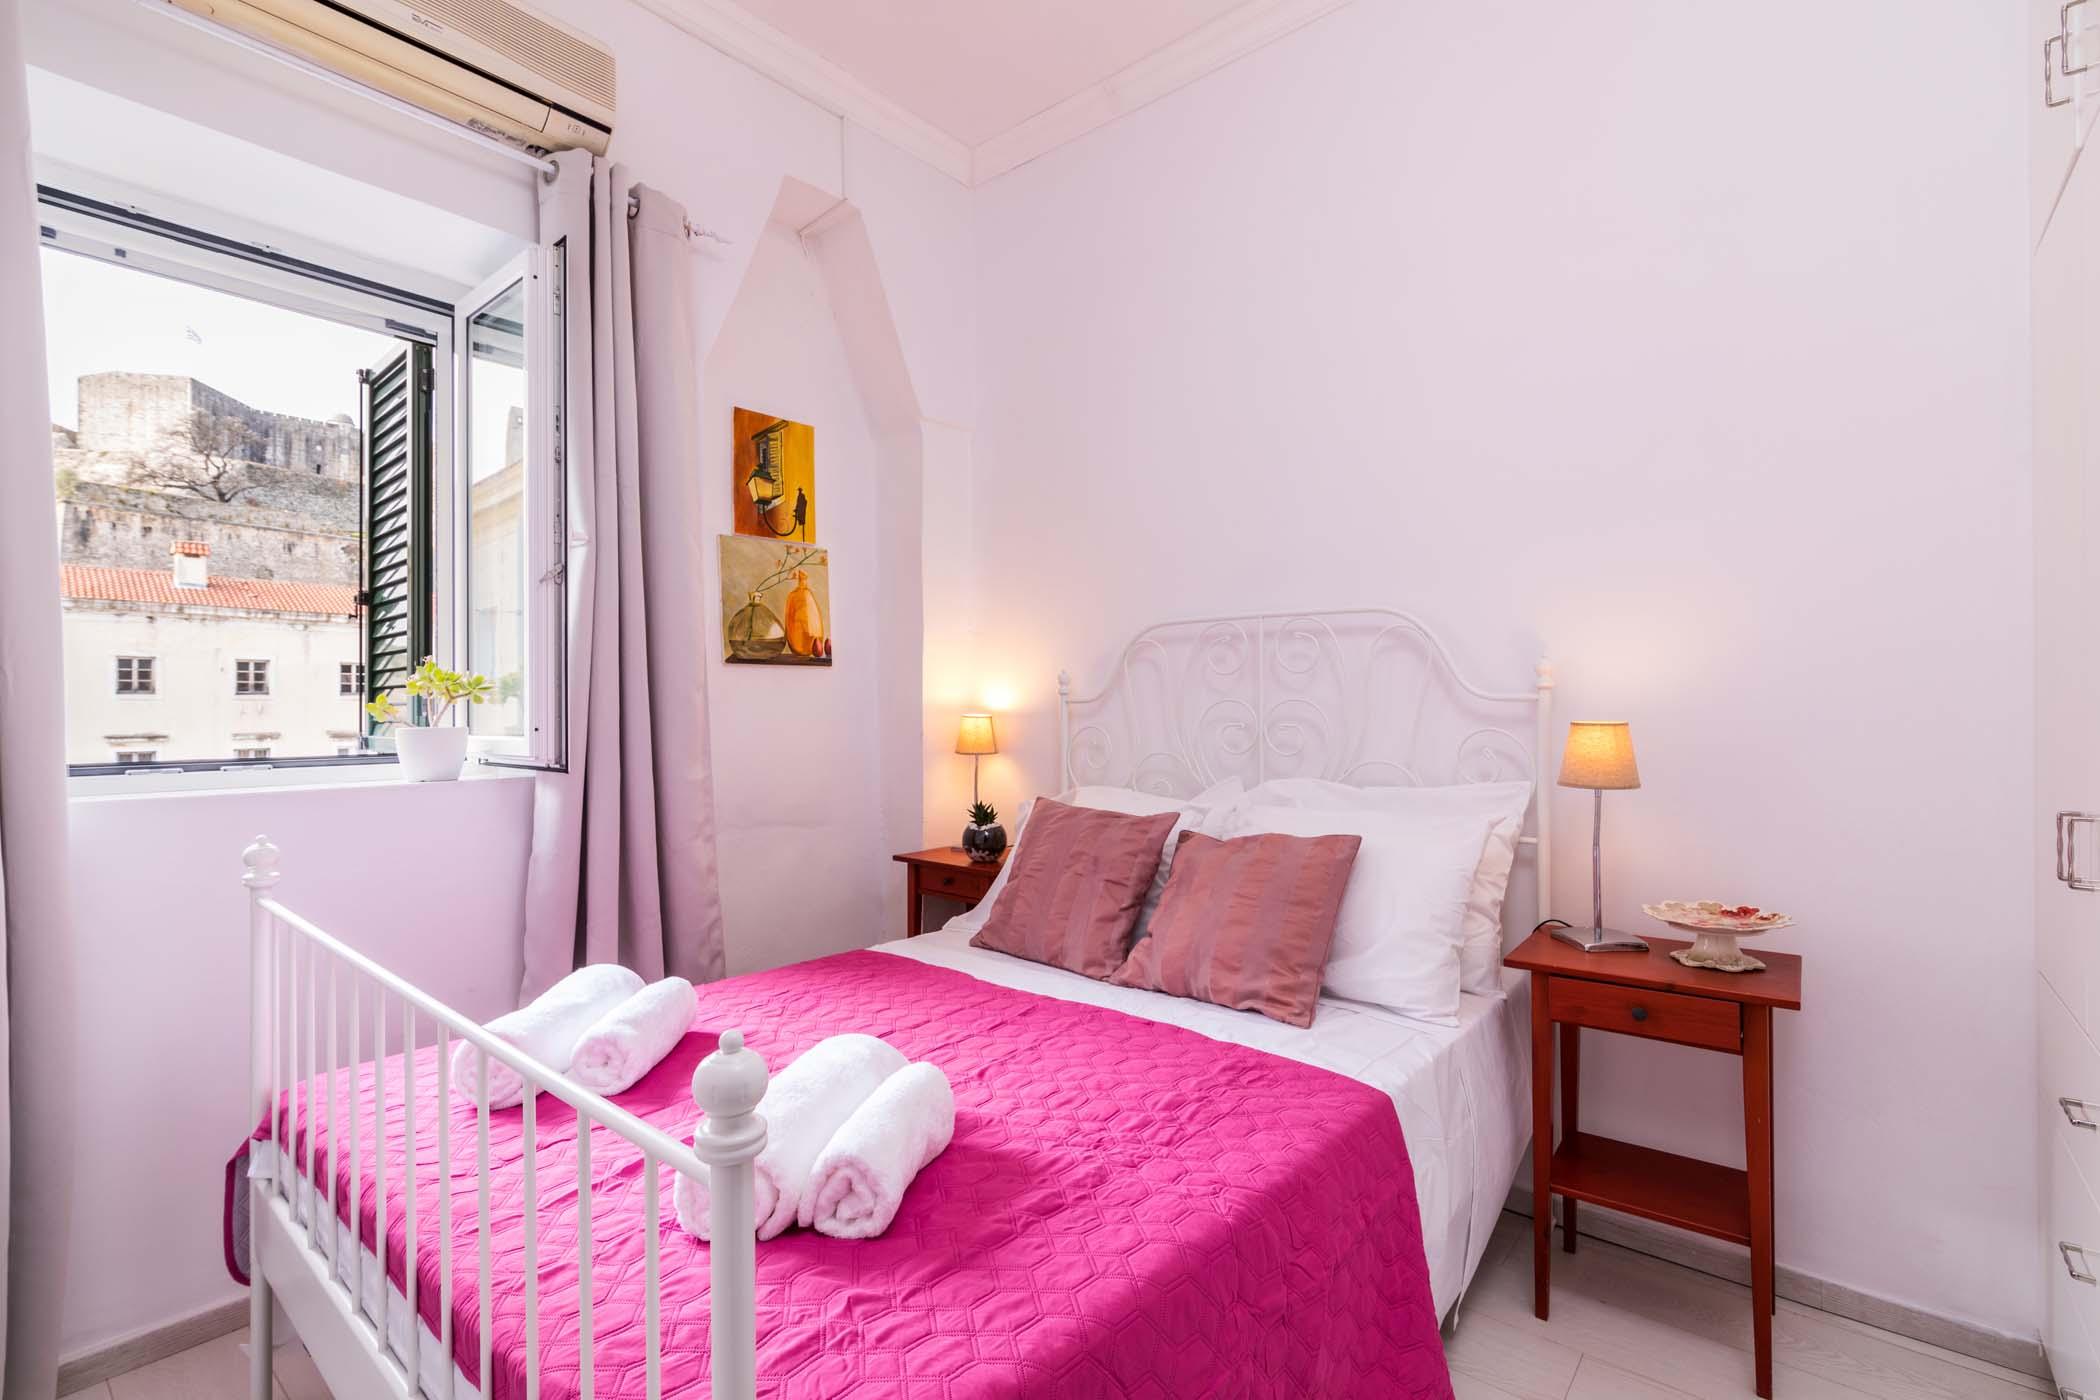 corfu town apartments - corfu town accommodation - ionian summer